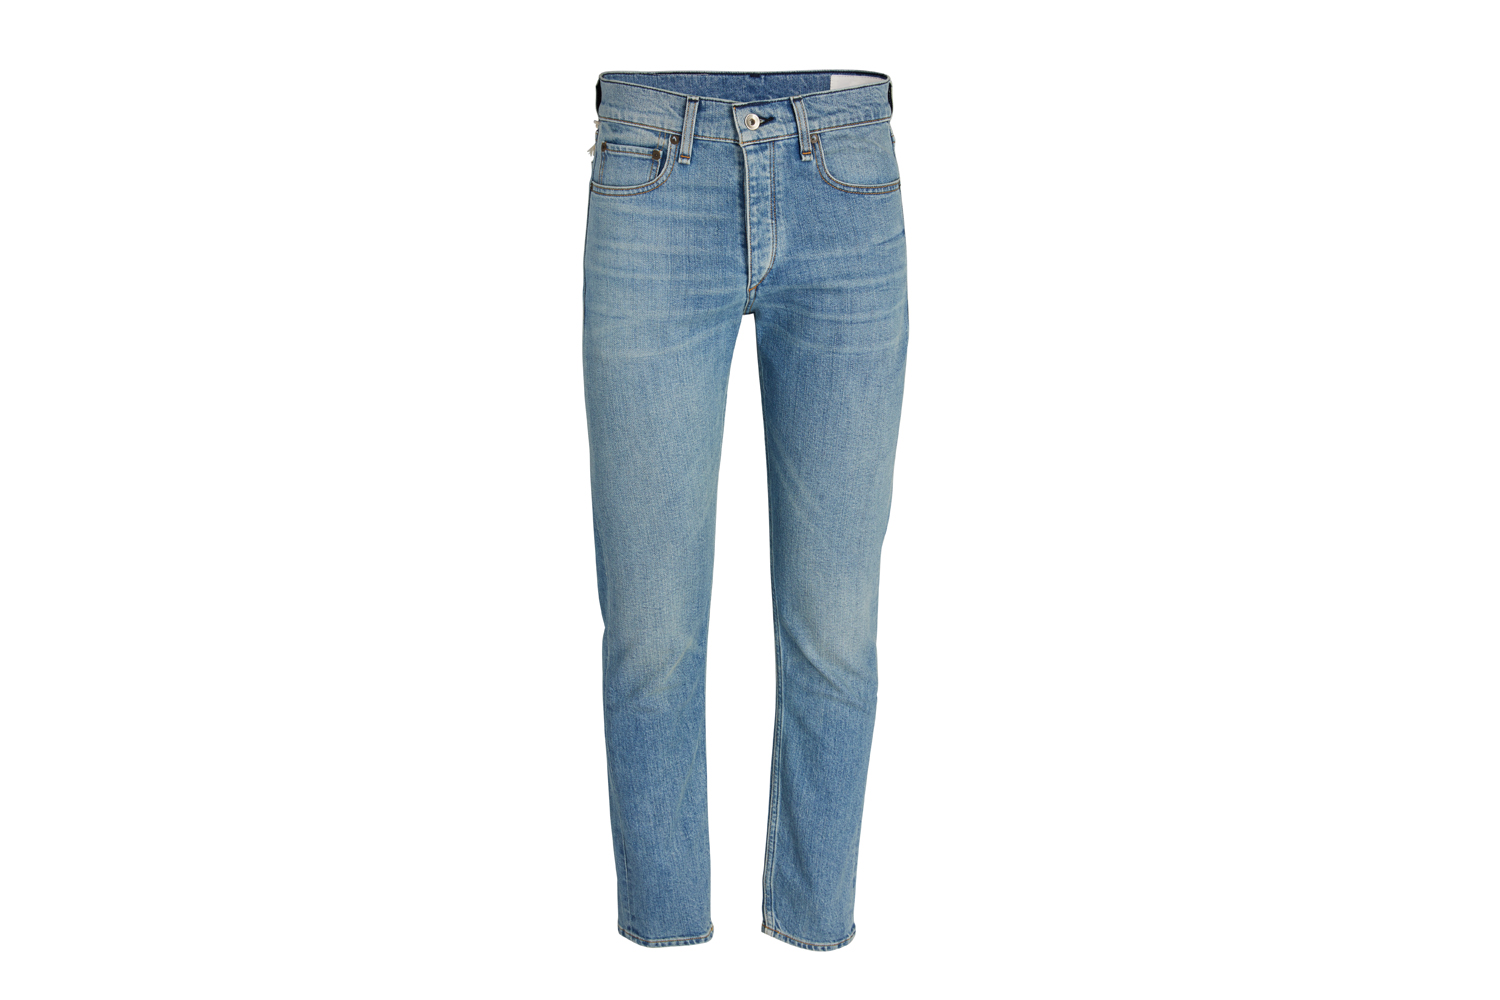 Standard Issue Fit 2-Mid-Rise Relaxed Slim-Fit Jeans Rag & Bone